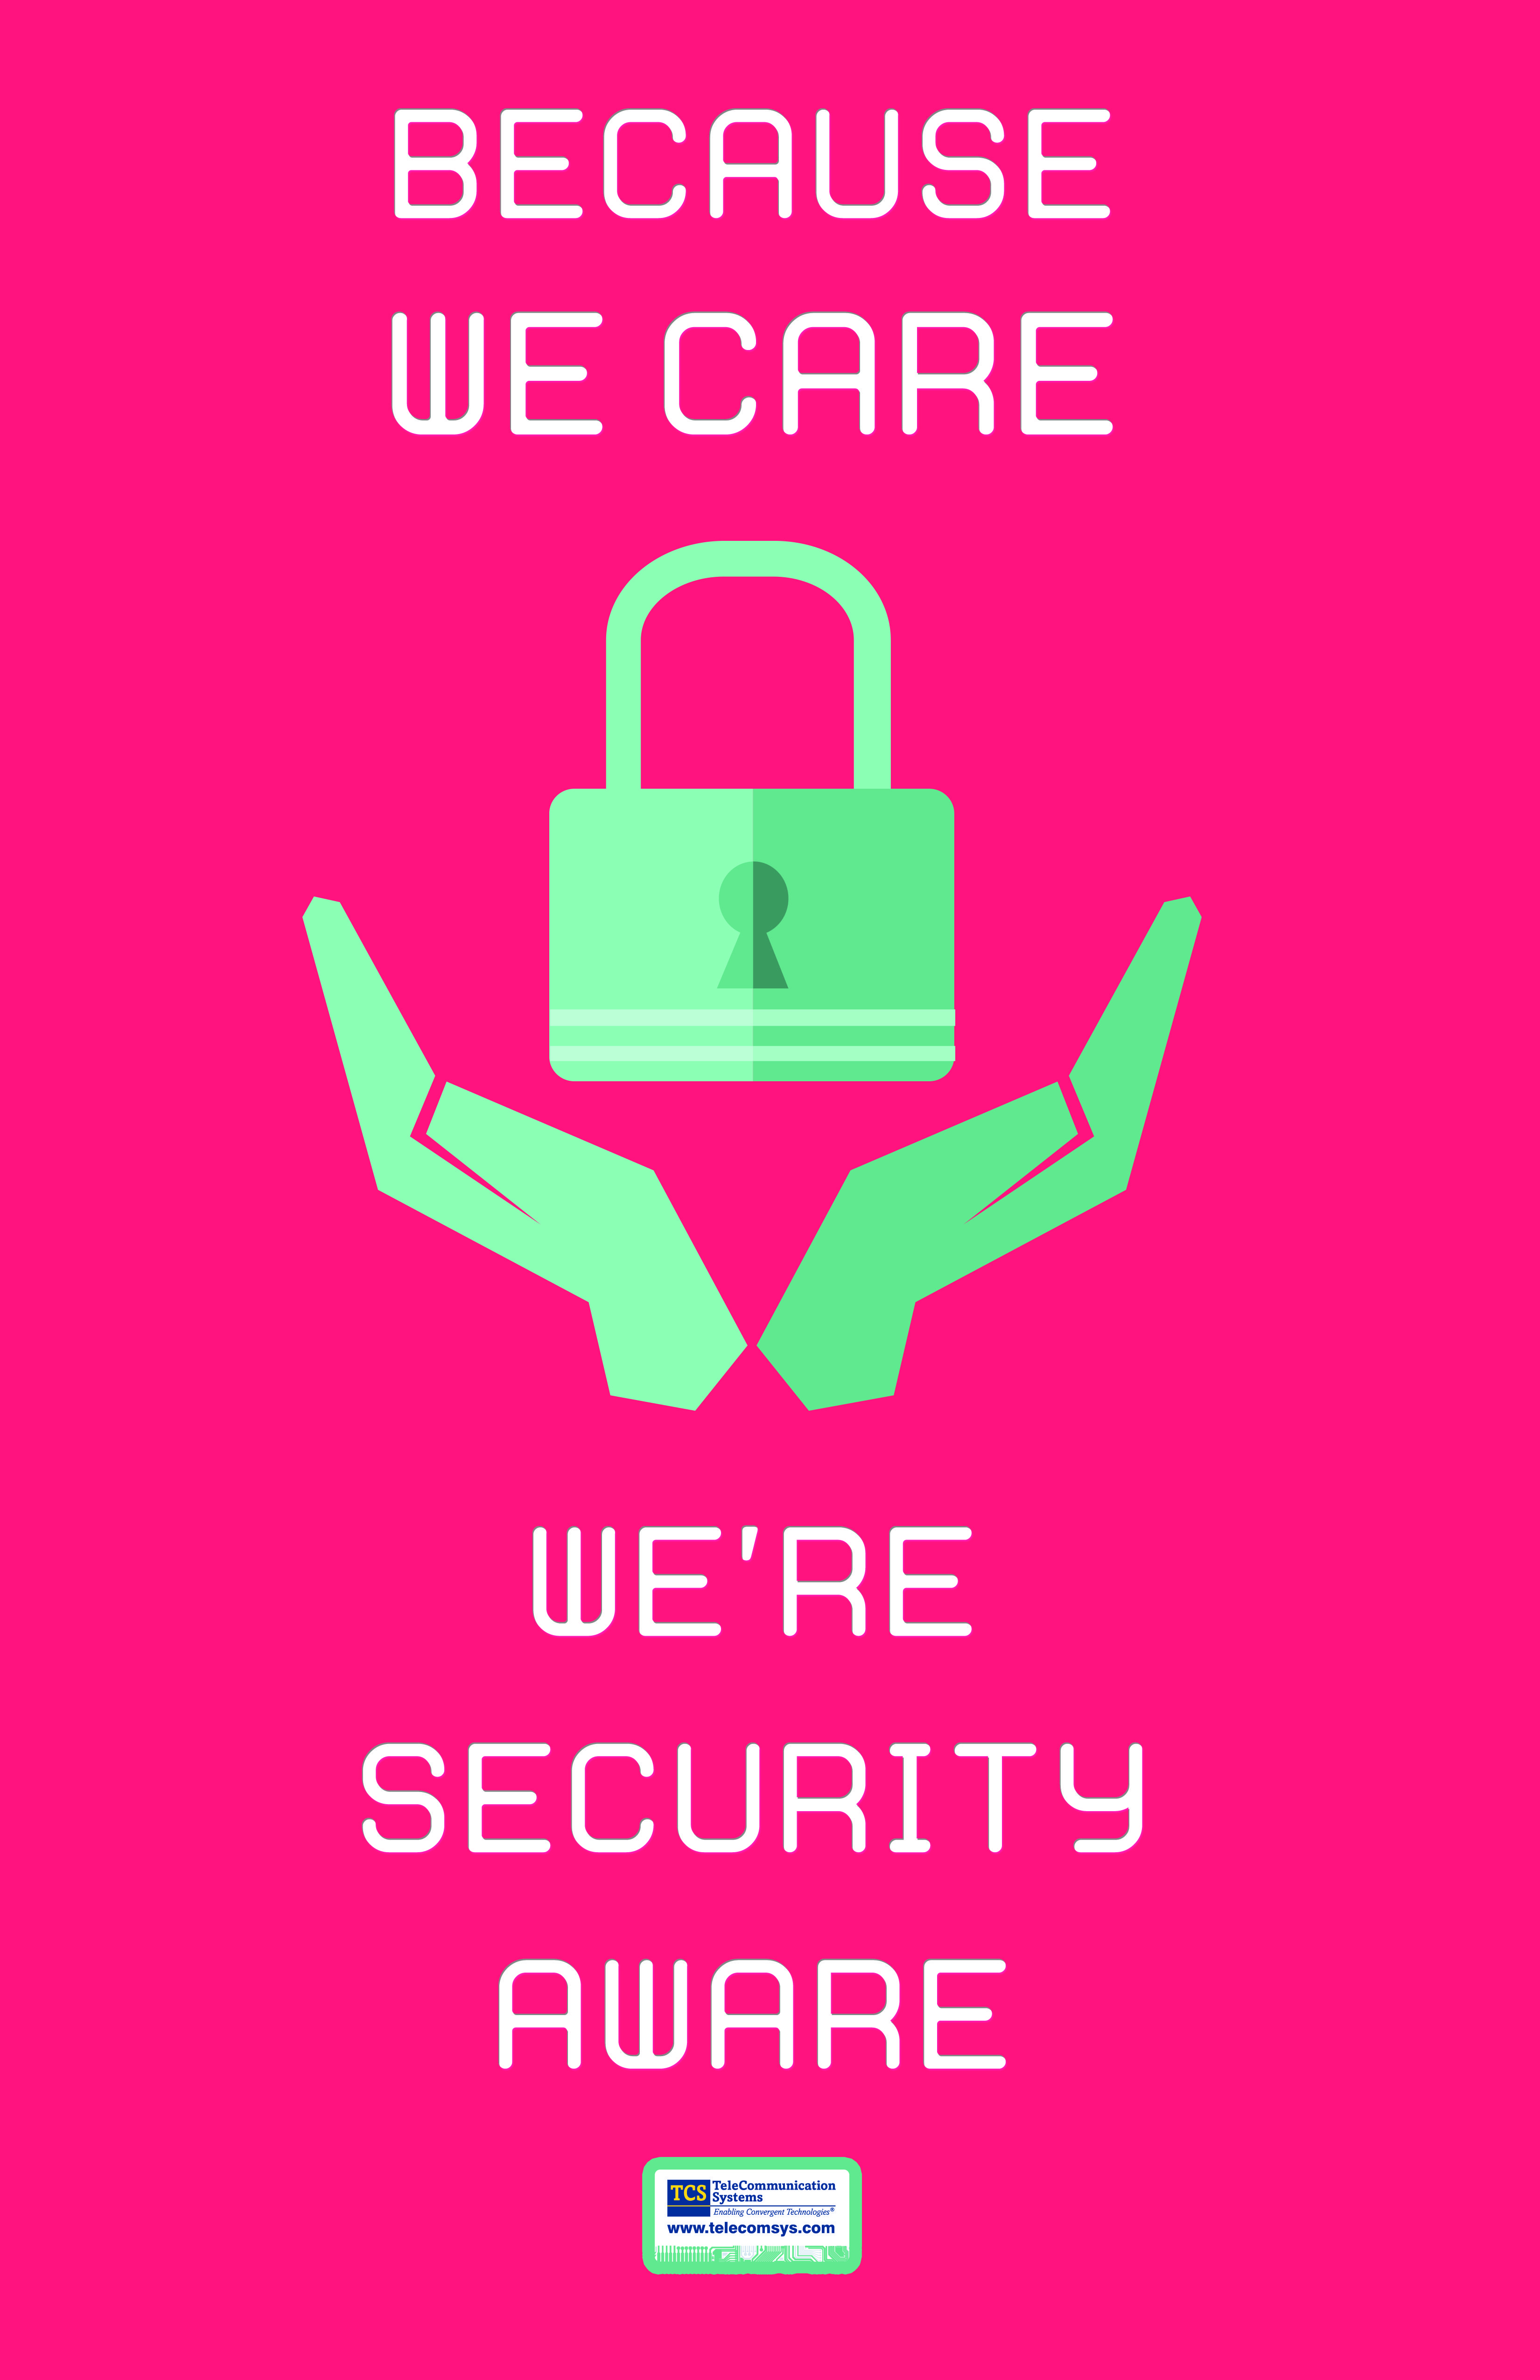 Because_we_care_300dpisflbashx 33005100 cyber